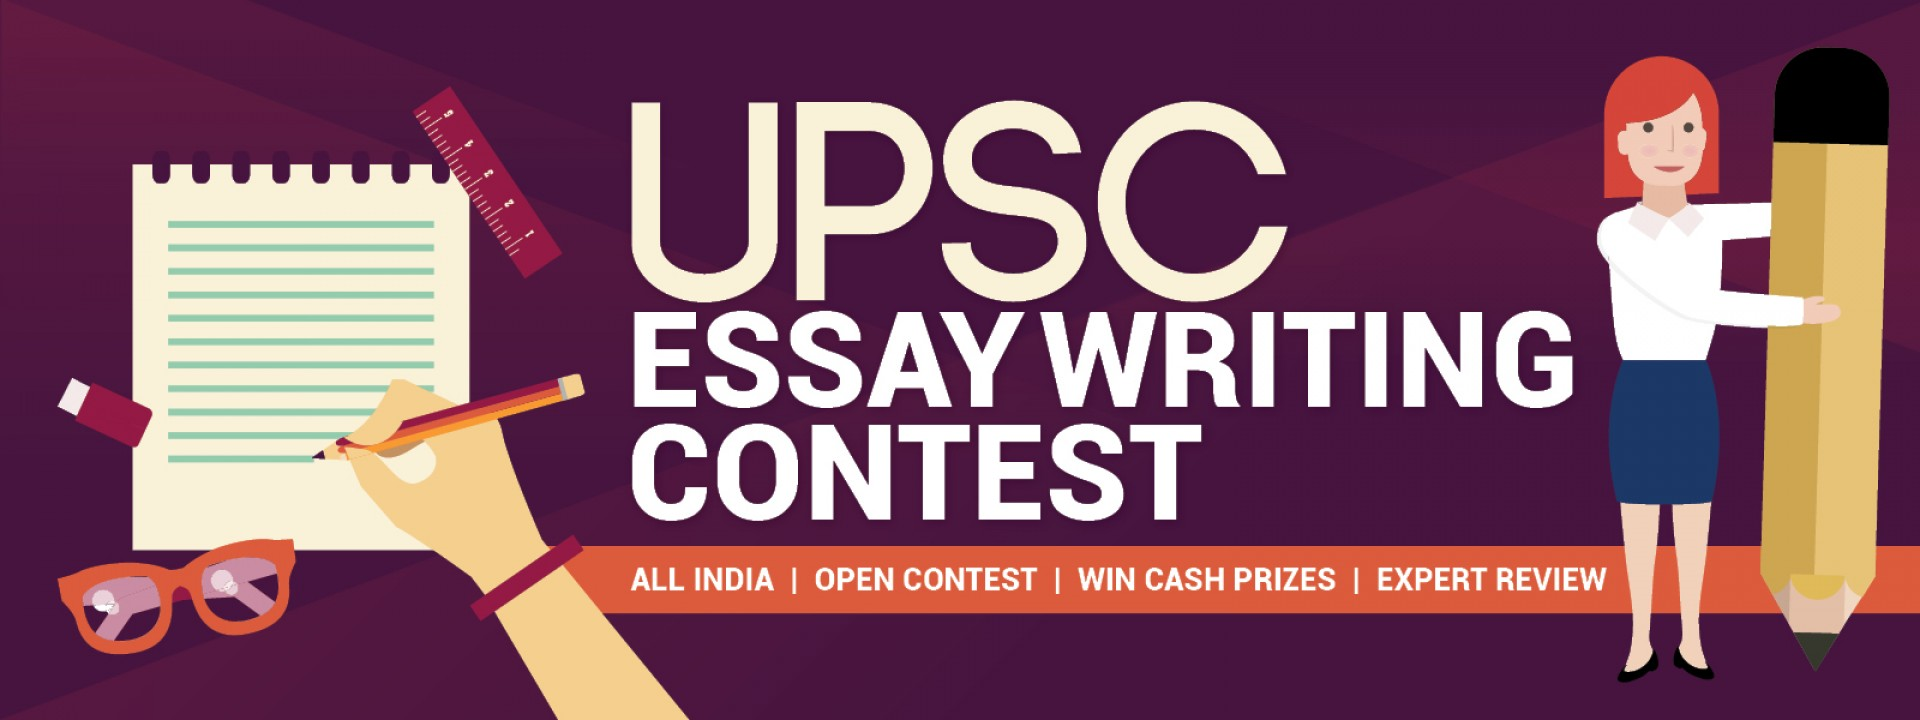 015 Essay Example Writing Contest Incredible International Competitions For High School Students Rules By Essayhub 1920